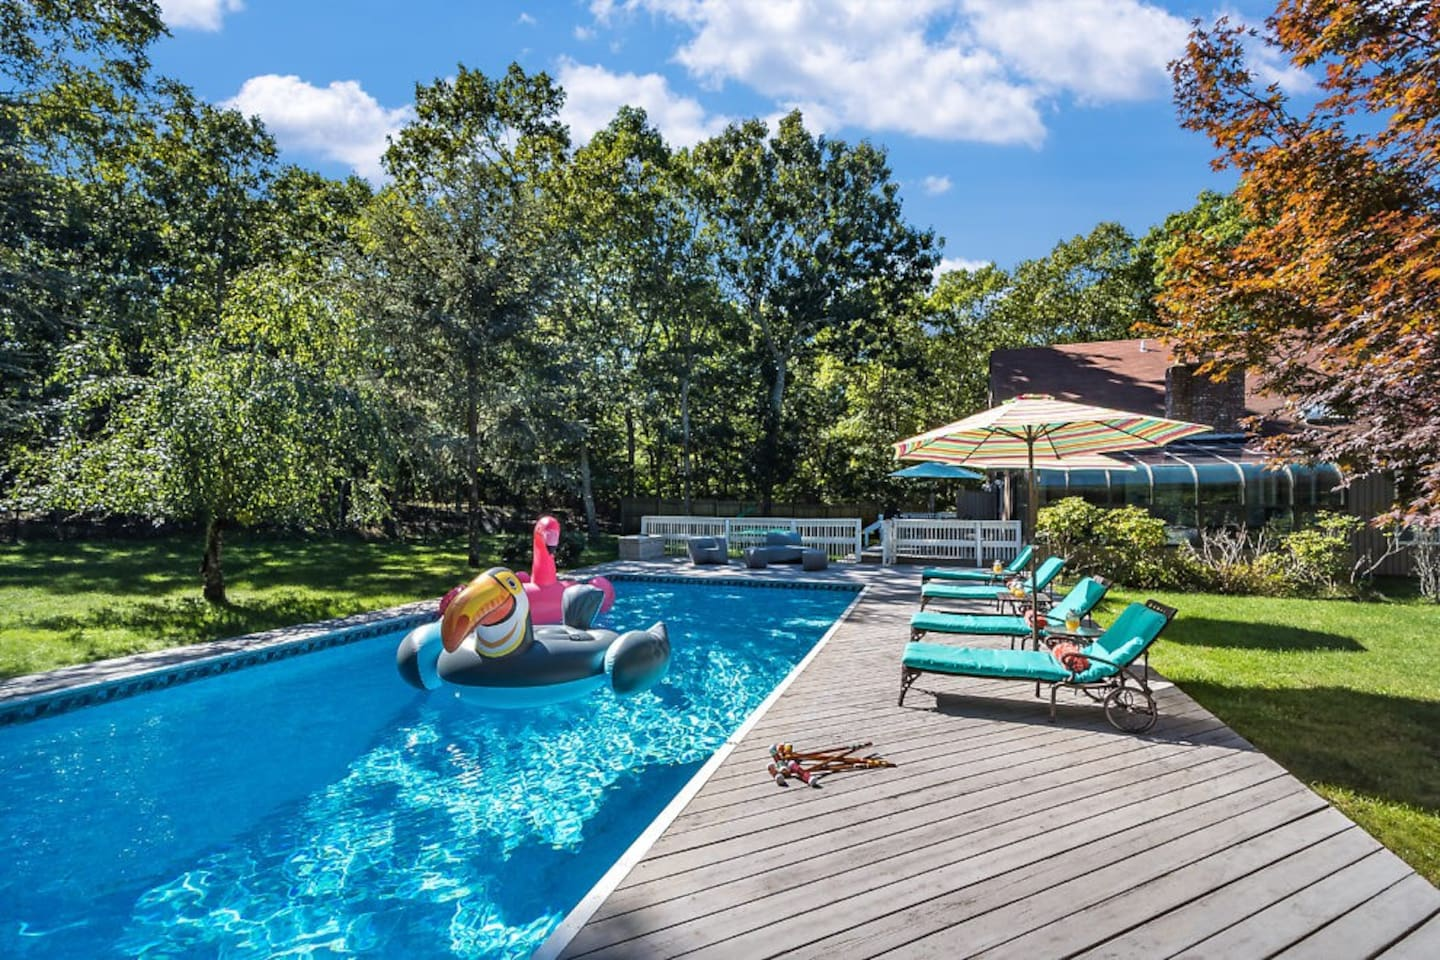 1.2 acre East Hampton property centrally located 5 minutes from the village and beach. Modern home features: a 20x40 Sunny pool, a wrap around deck, 3 bedrooms and 2 1/2 bathrooms, a sun room and also a basketball court.